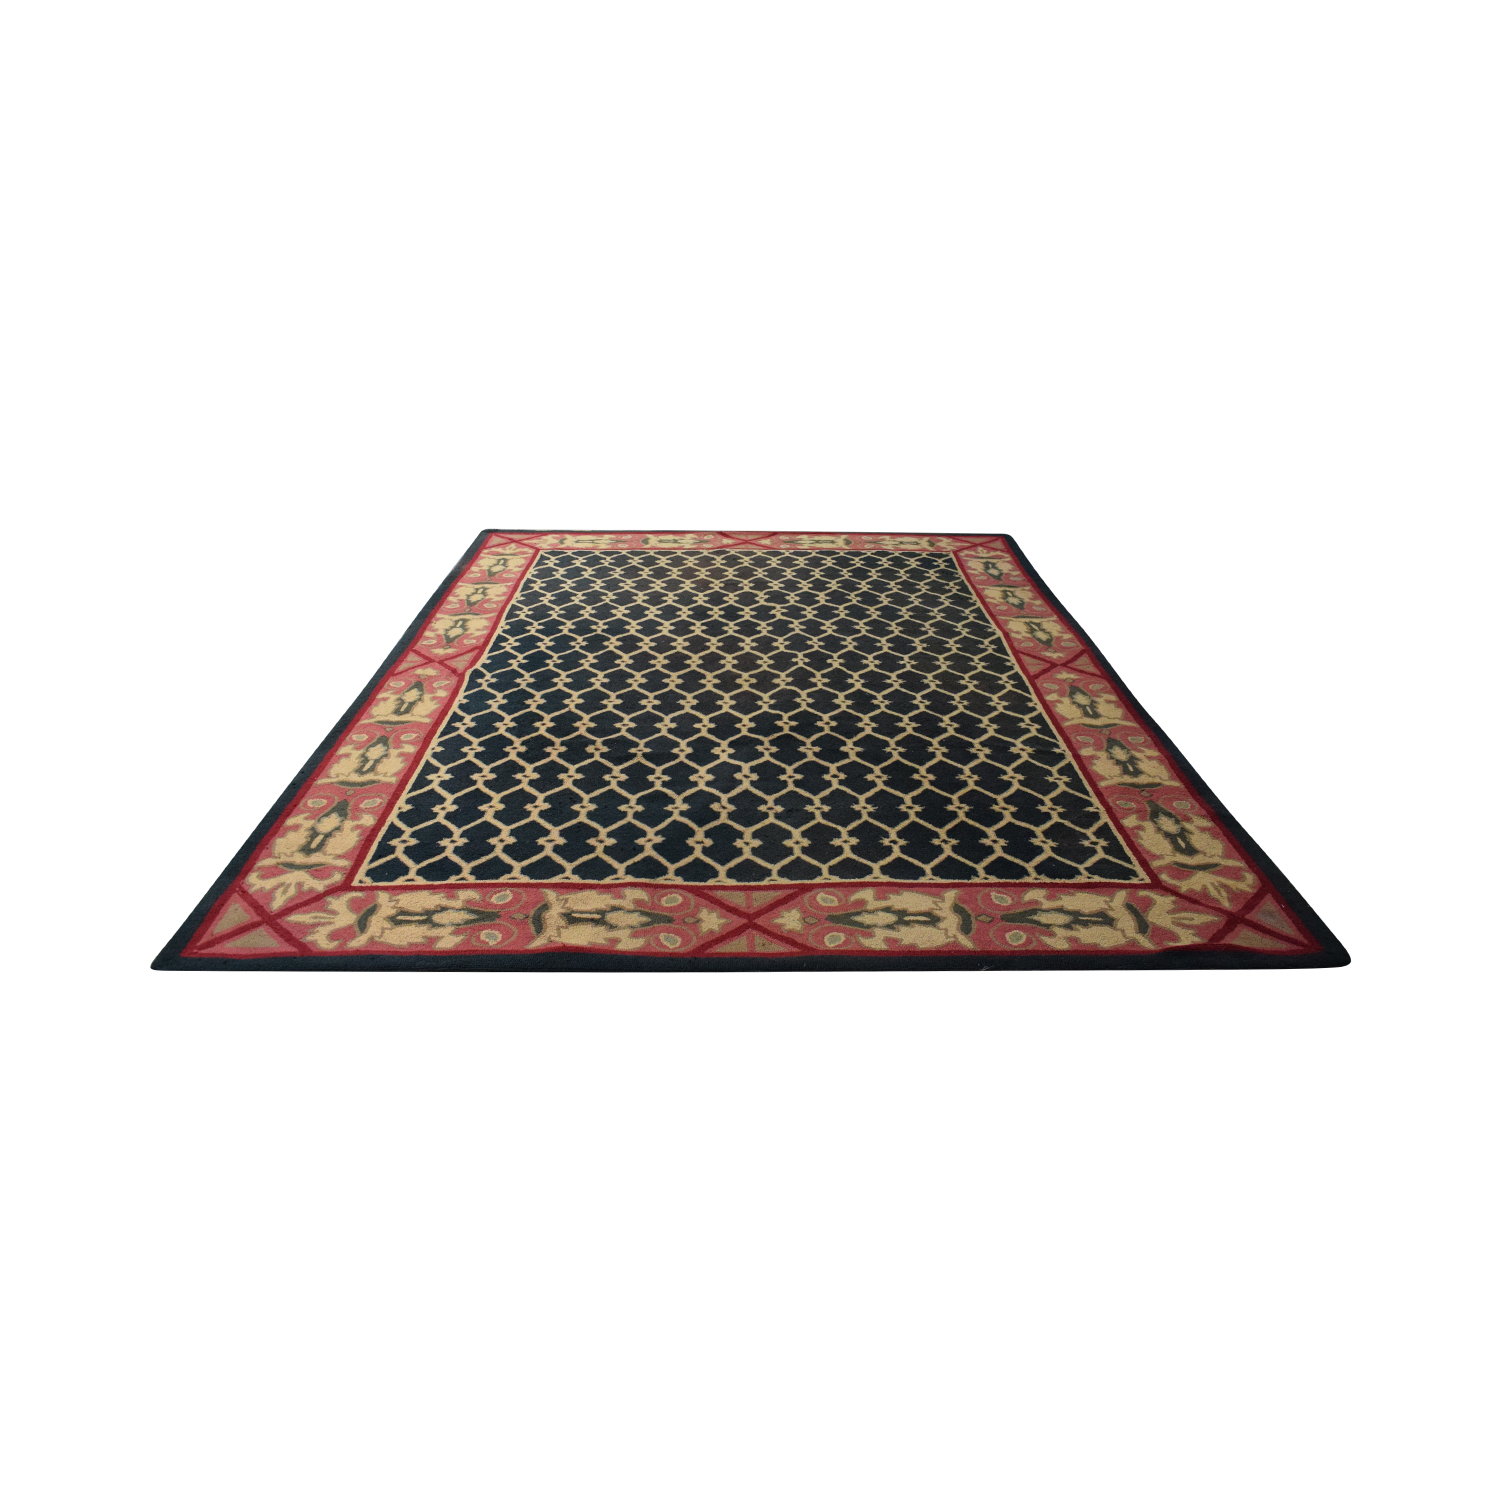 ABC Carpet & Home ABC Carpet & Home Windsor Wool Rug Decor